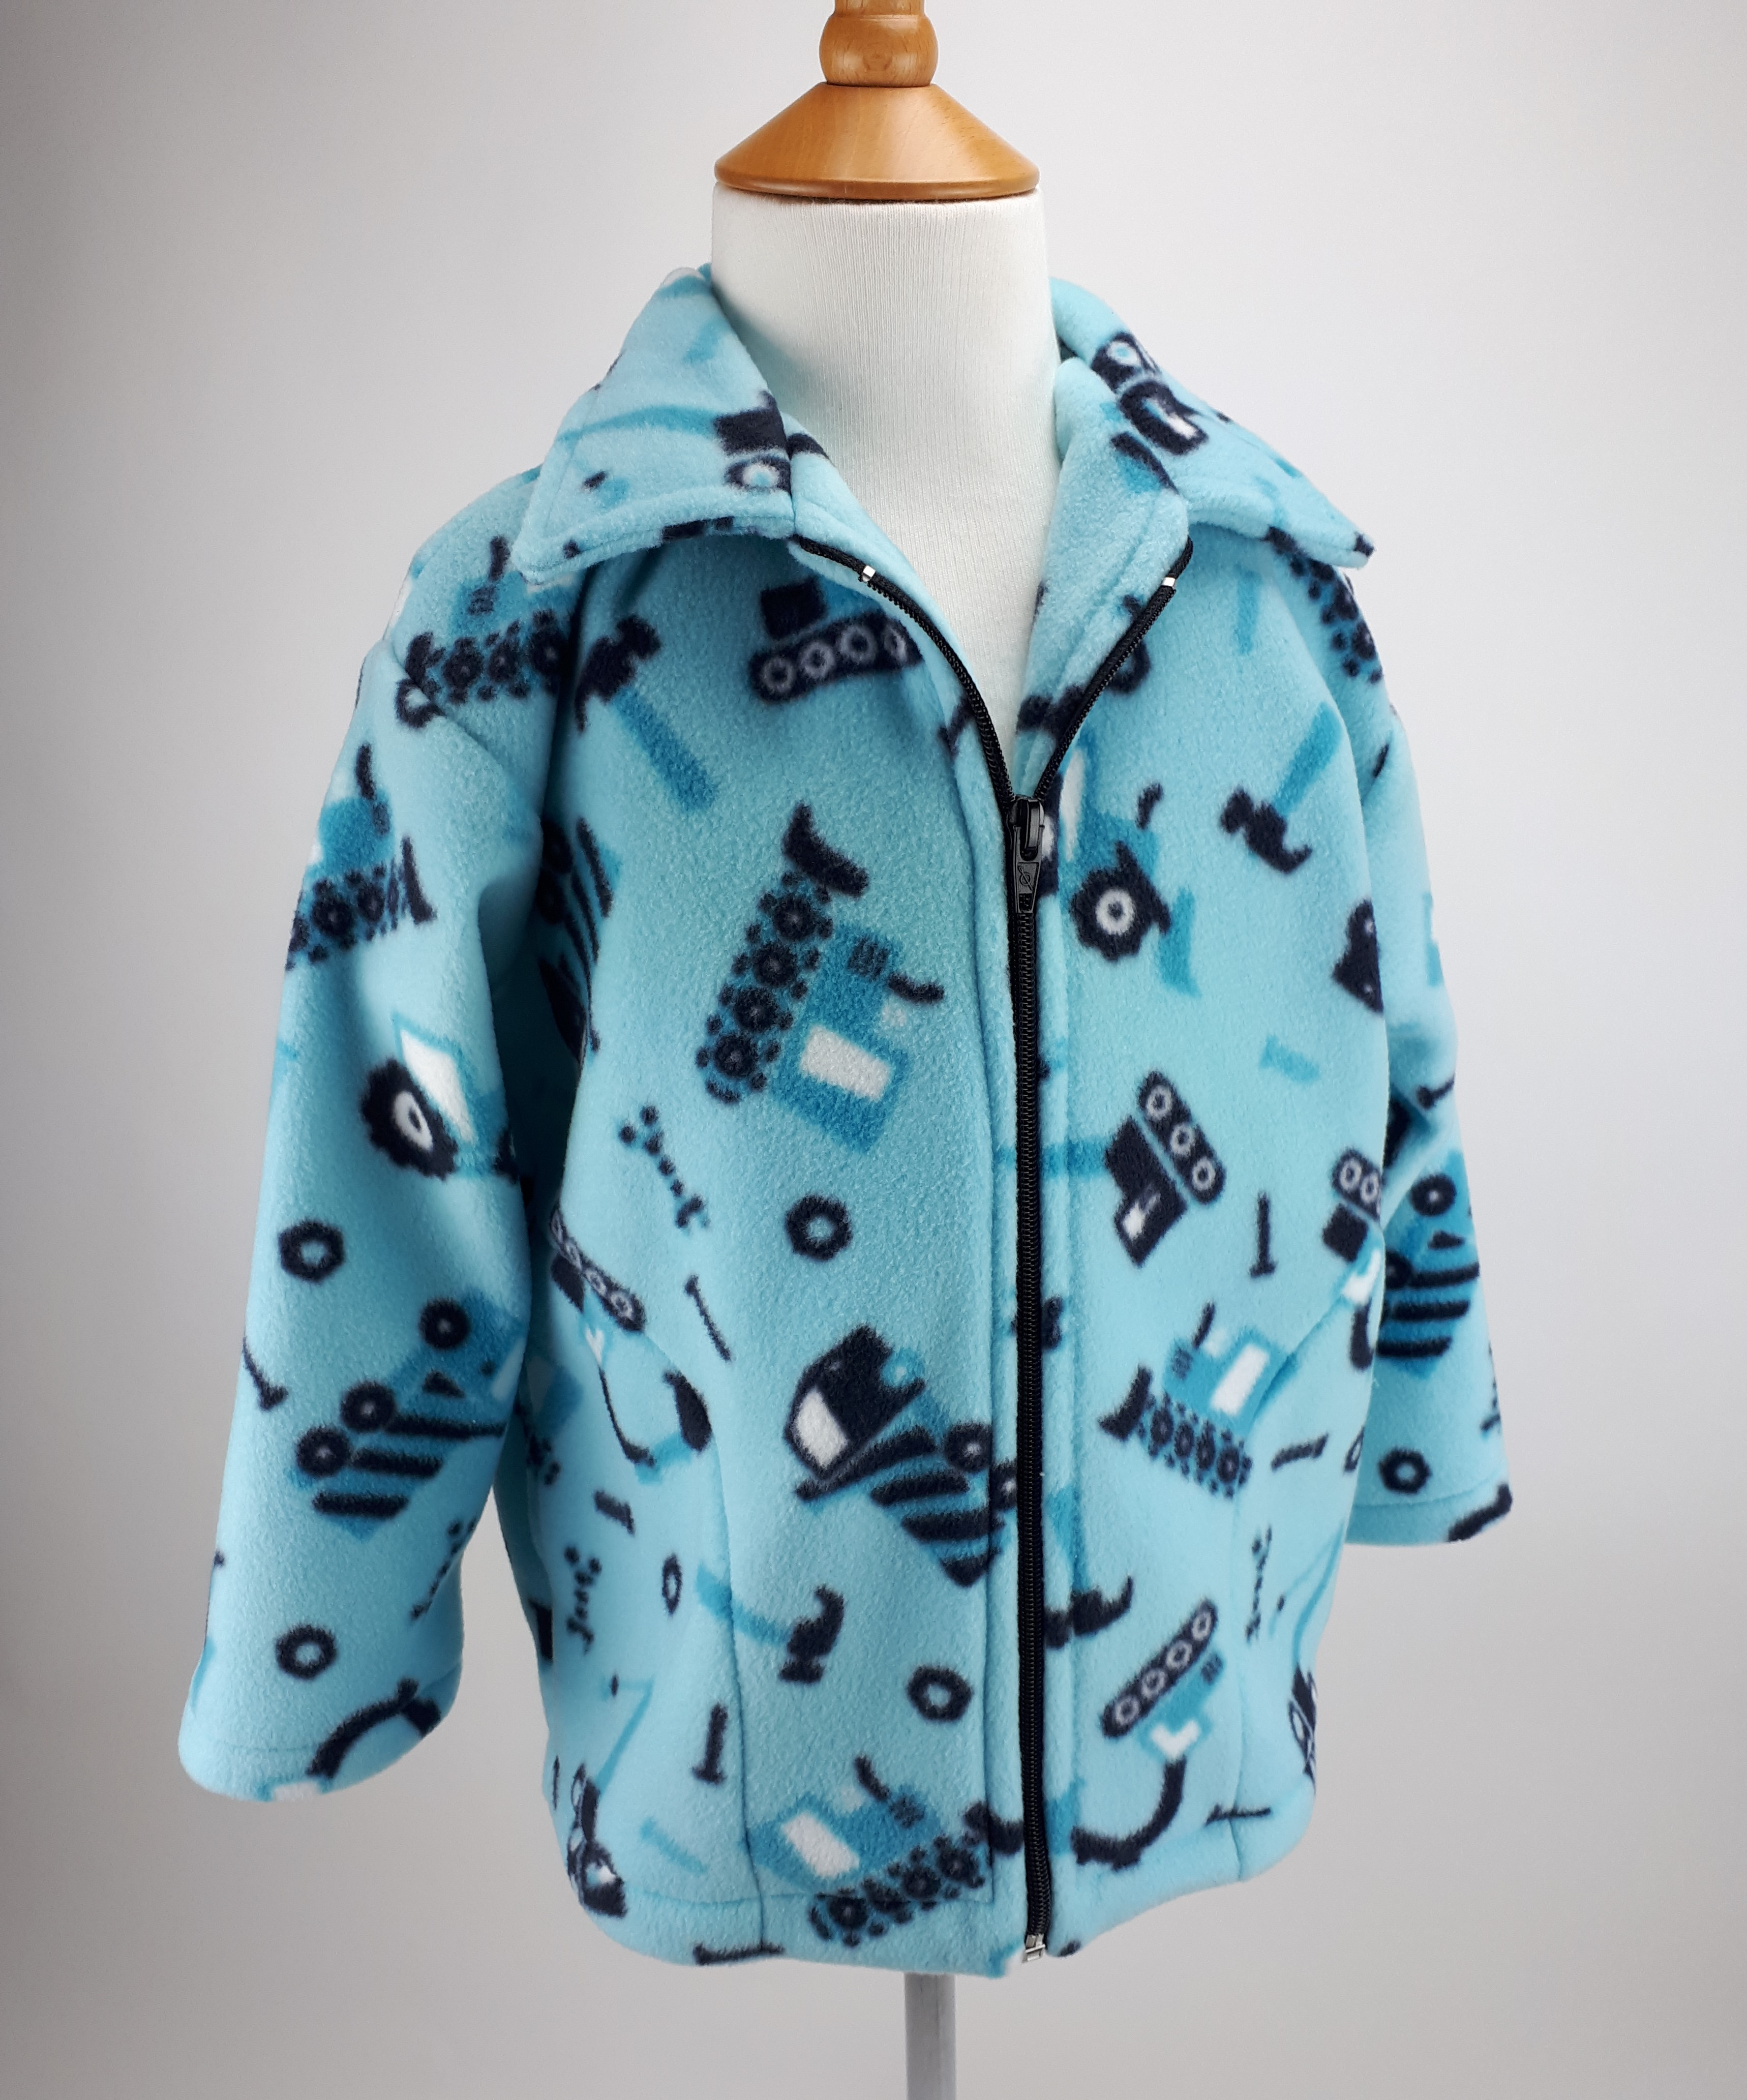 Turquoise Diggers Jacket